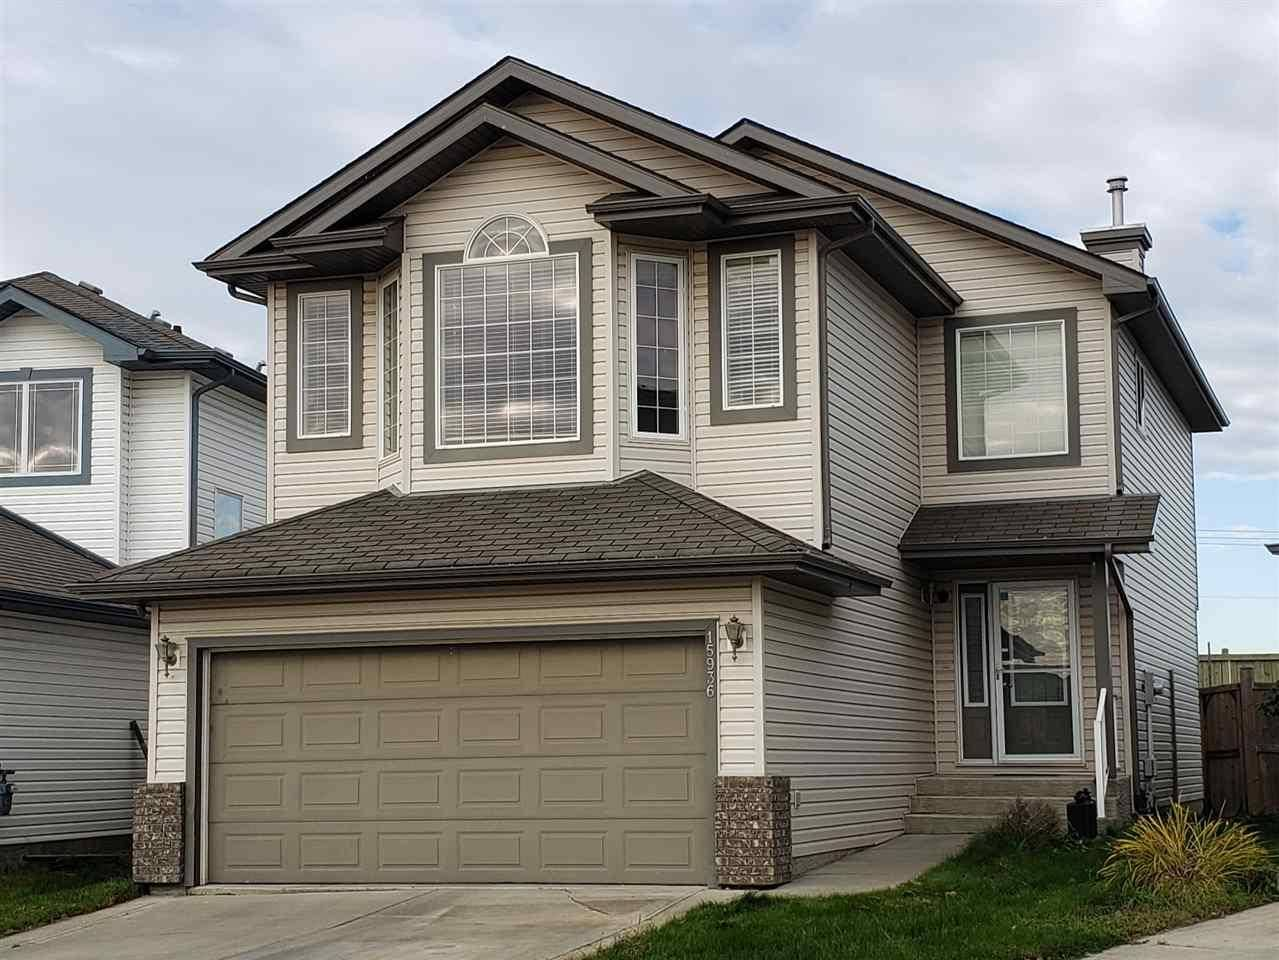 House for sale at 15936 141 St Nw Edmonton Alberta - MLS: E4176012